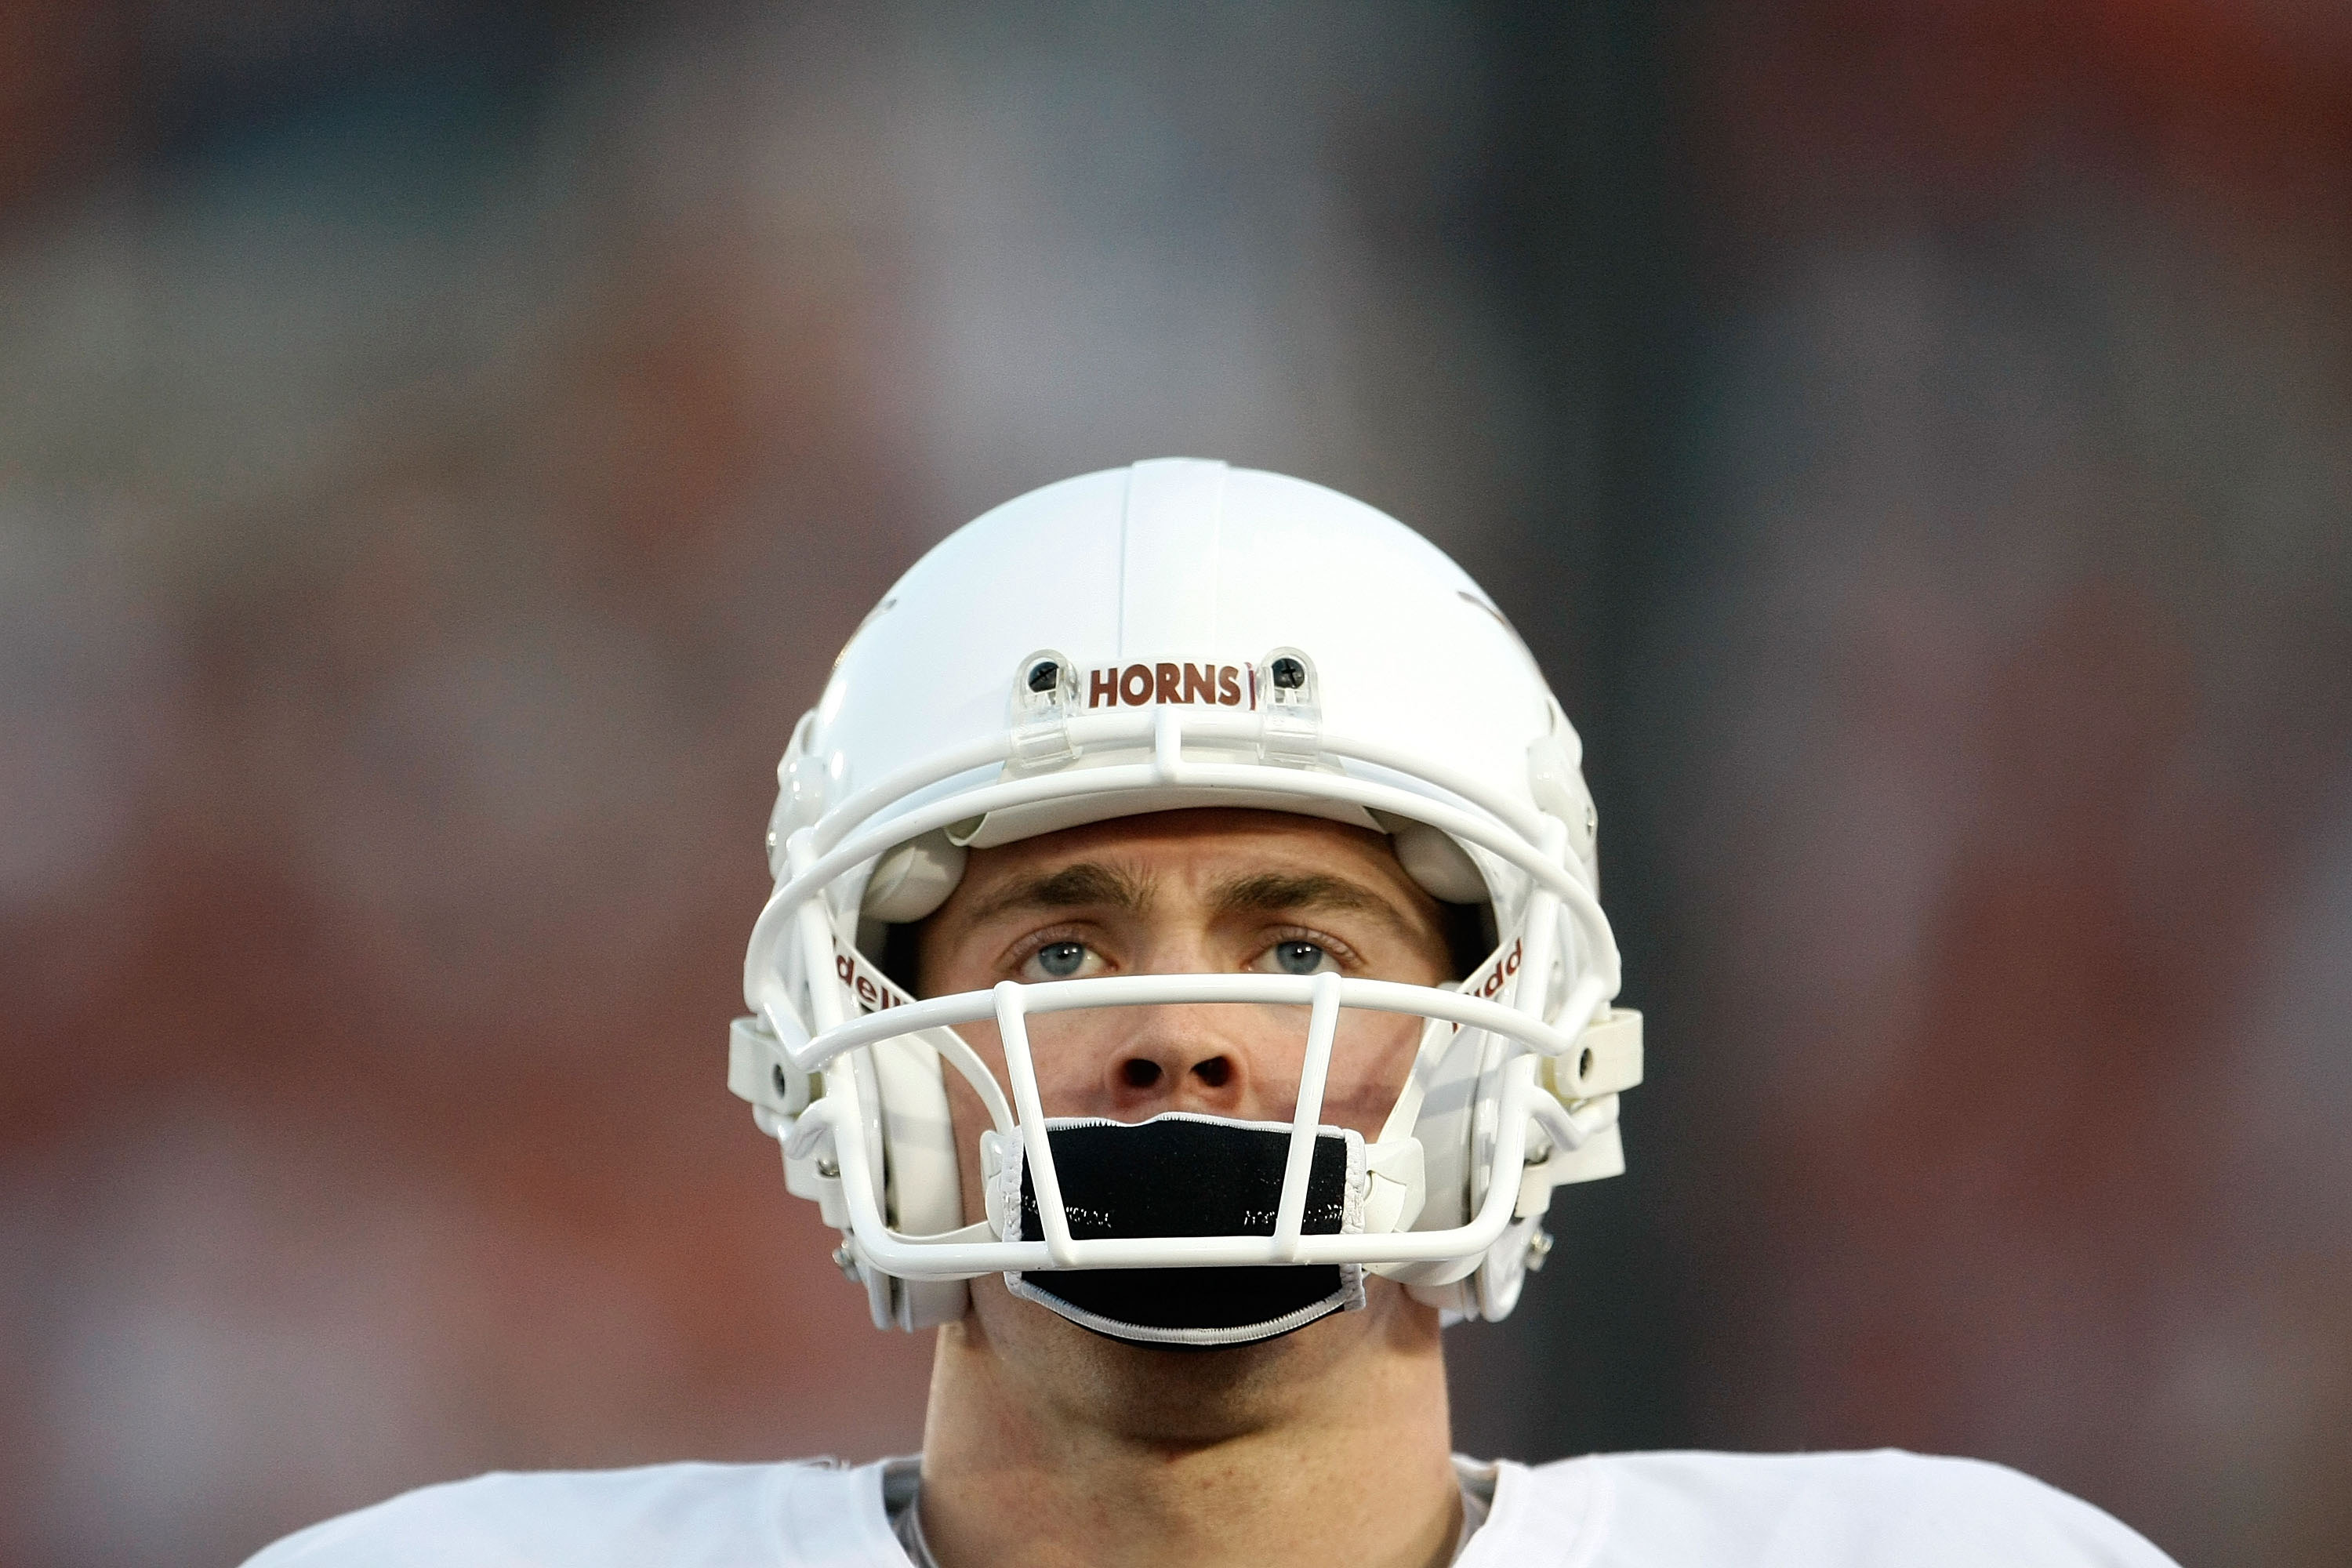 PASADENA, CA - JANUARY 07: Quarterback Colt McCoy #12 of the Texas Longhorns looks on before taking on the Alabama Crimson Tide in the Citi BCS National Championship game at the Rose Bowl on January 7, 2010 in Pasadena, California. (Photo by Jeff Gross/Getty Images) *** Local Caption *** Colt McCoy